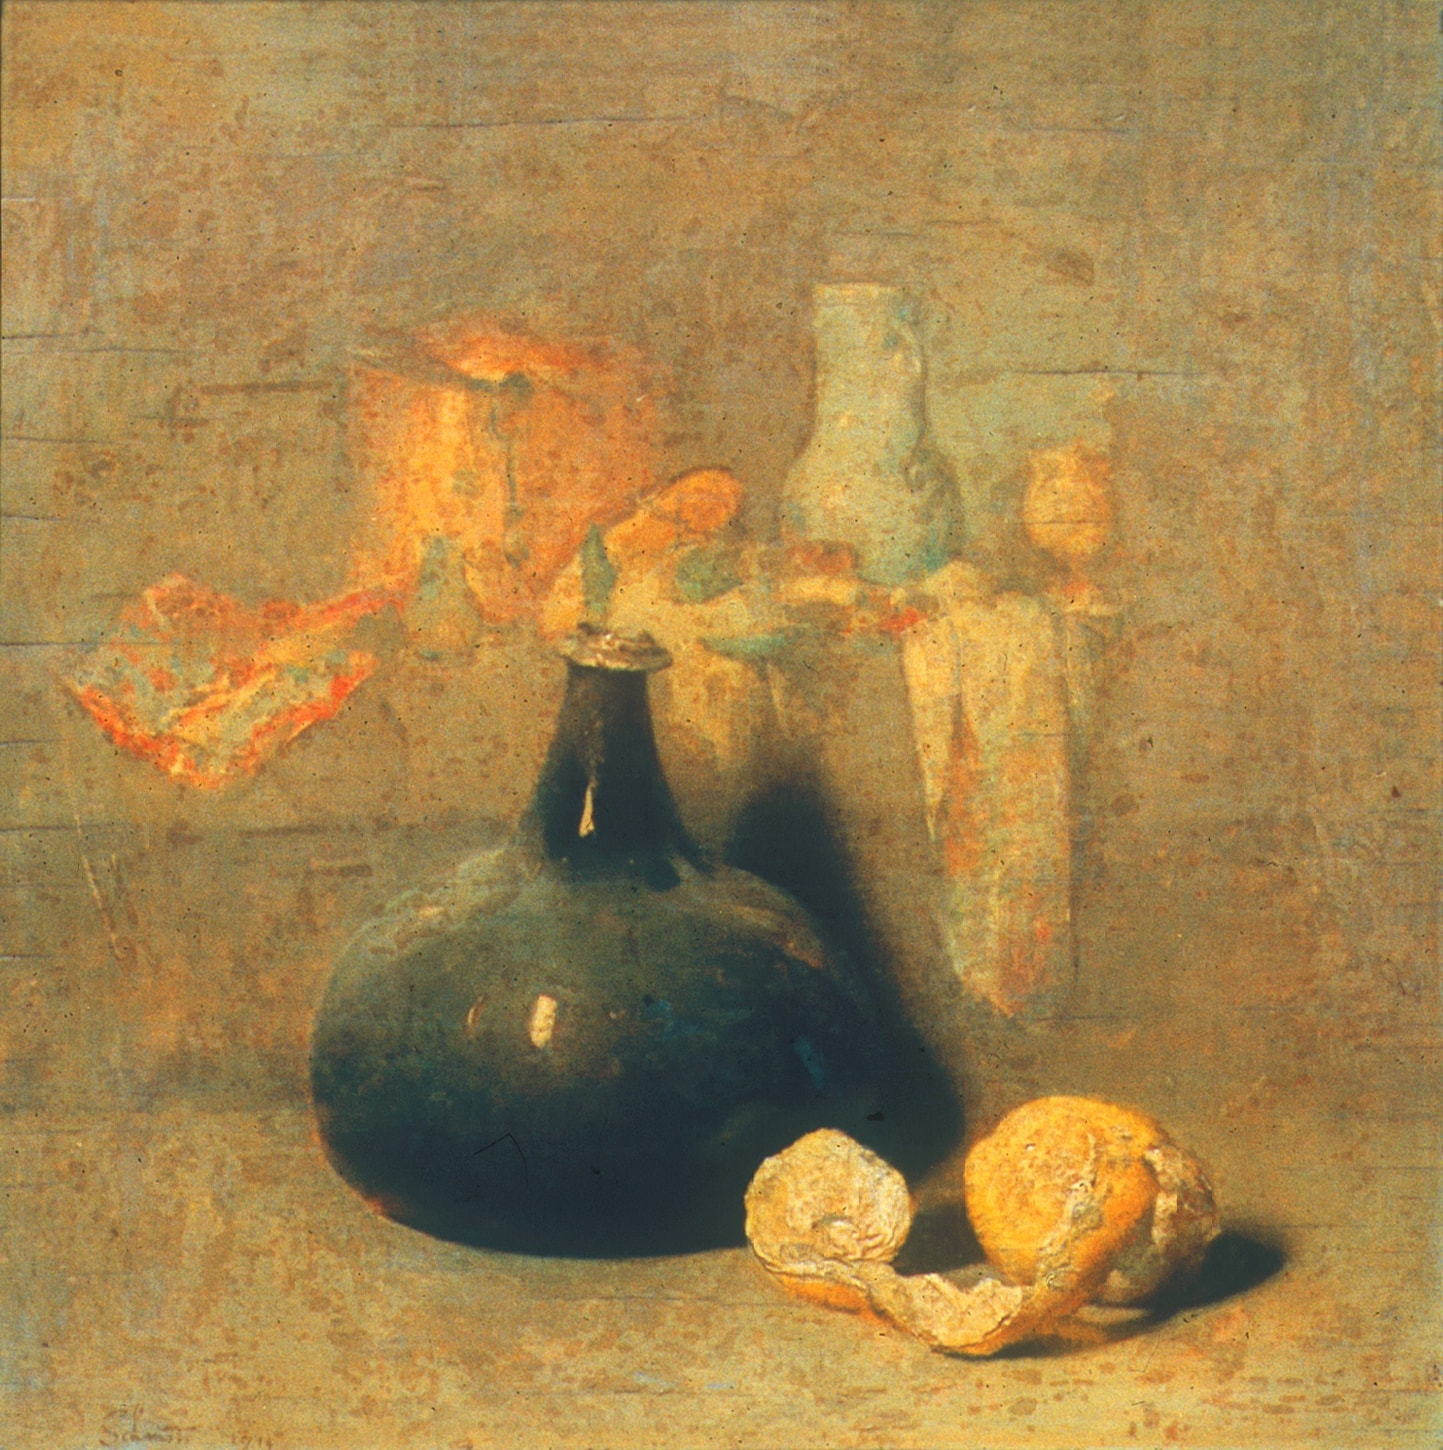 Still Life with Oranges, Oil on canvas, 1914